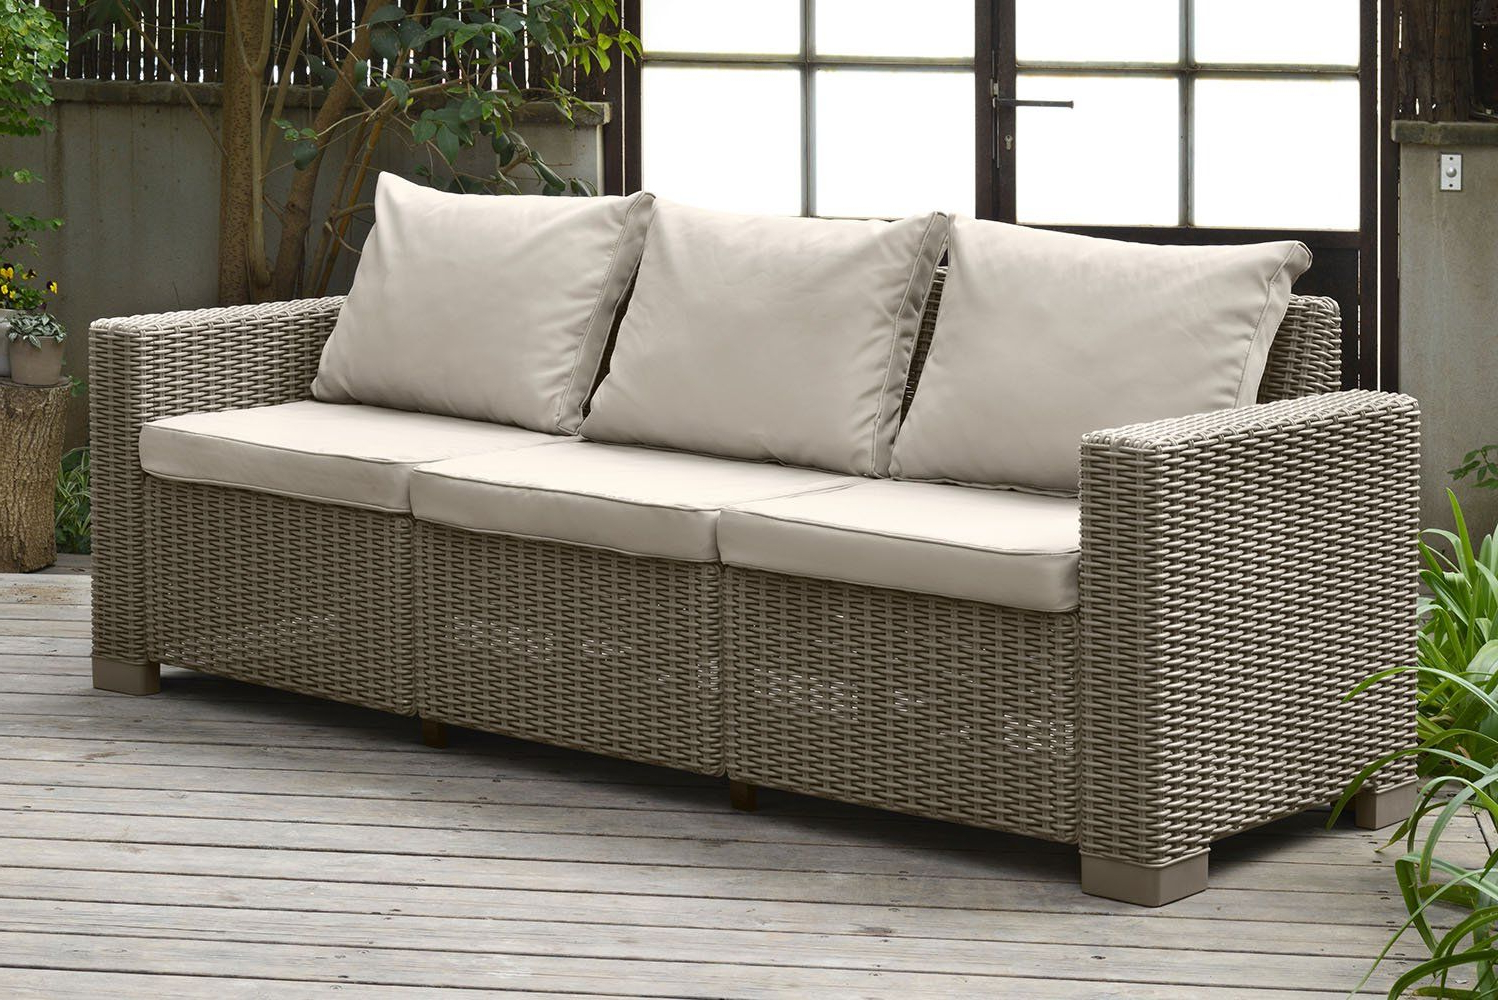 Keter California 3seater Seating Patio Sofa With Cushions In Inside Most Popular Furst Outdoor Loveseats With Cushions (View 13 of 25)